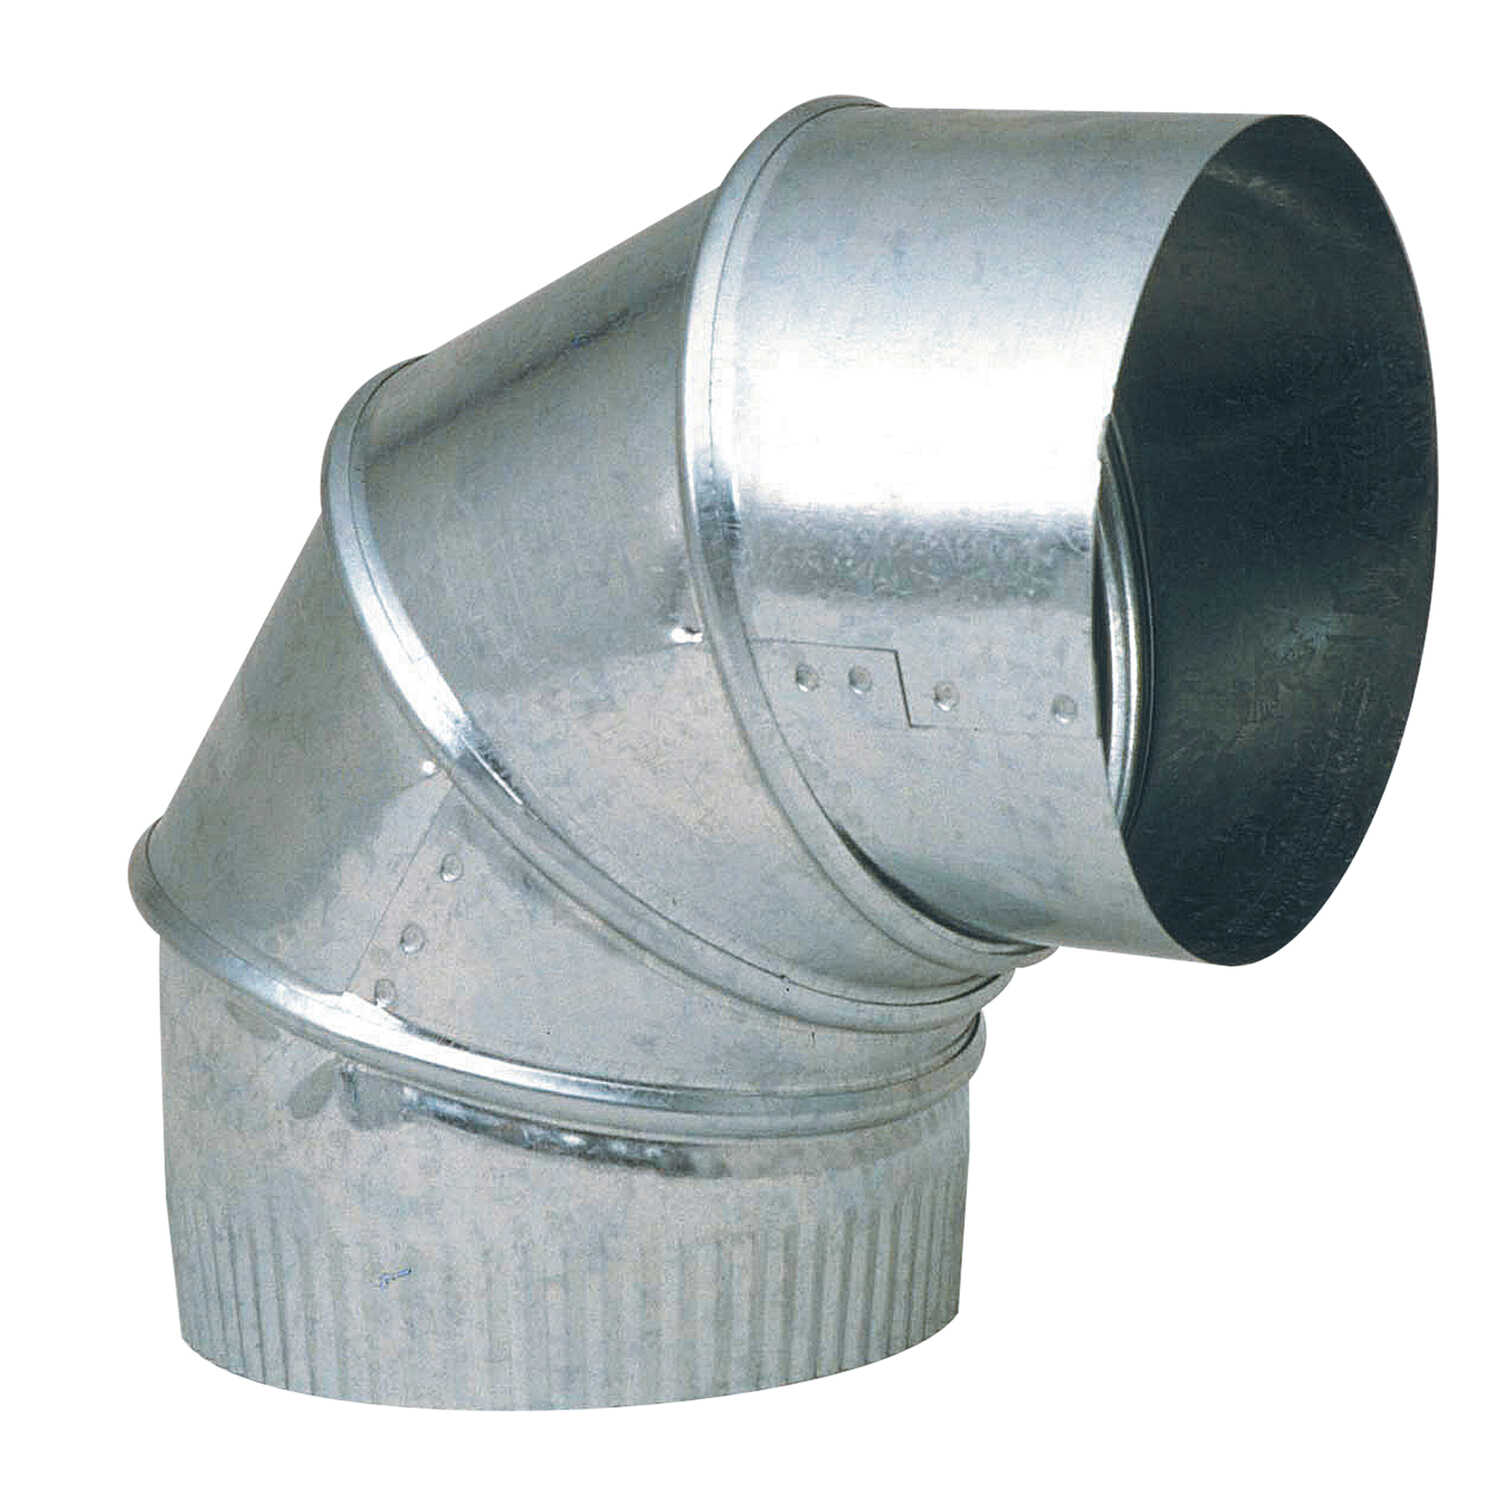 Imperial Manufacturing  5 in. Dia. x 5 in. Dia. Adjustable 90 deg. Galvanized Steel  Elbow Exhaust